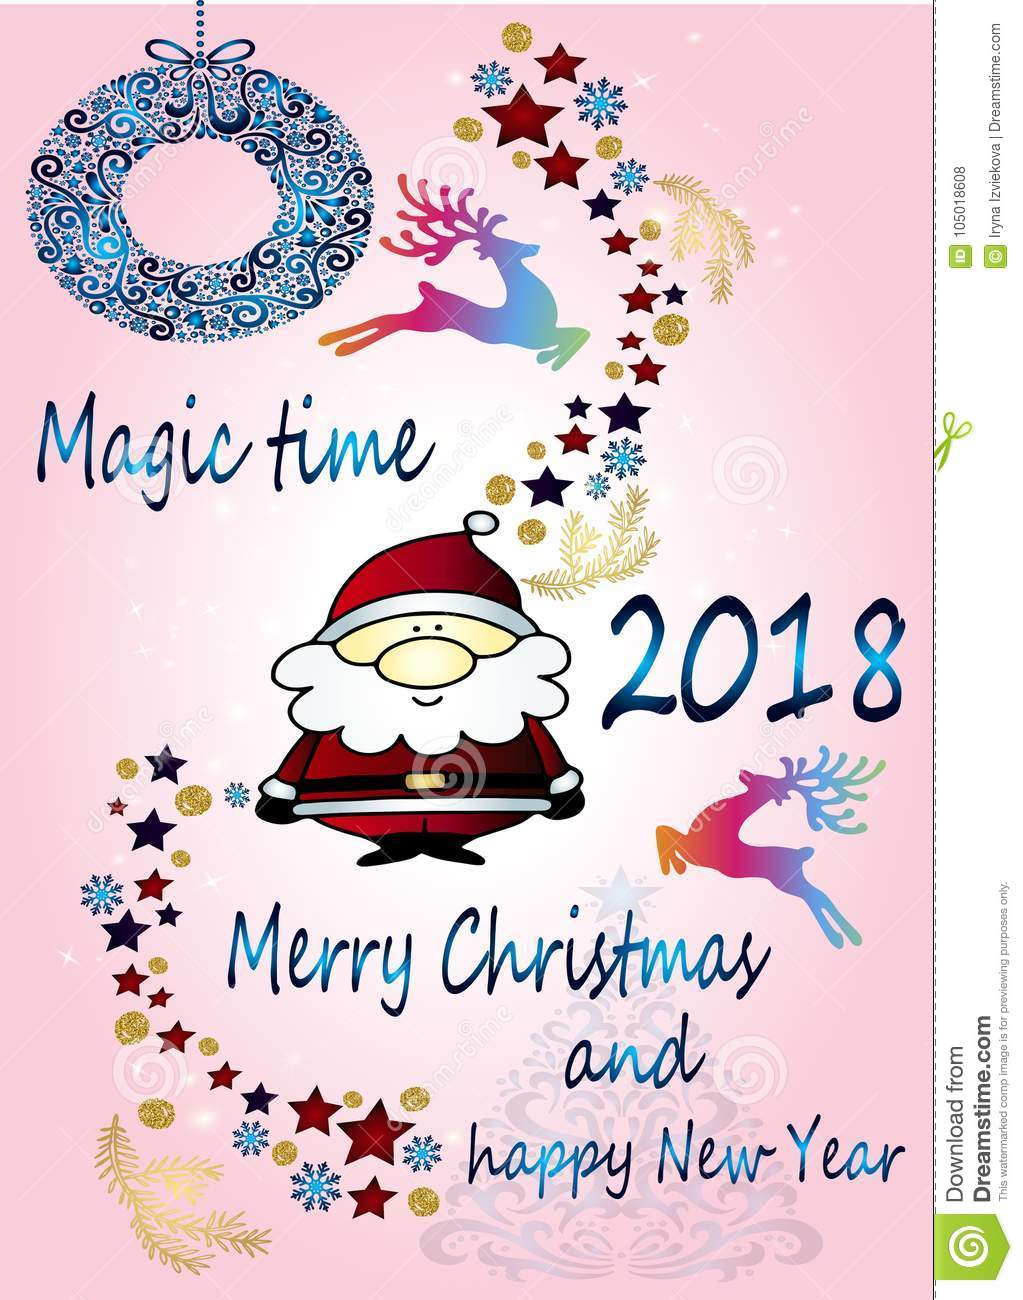 sweet cartoon greeting card happy new year and merry christmas bright sketch of santa